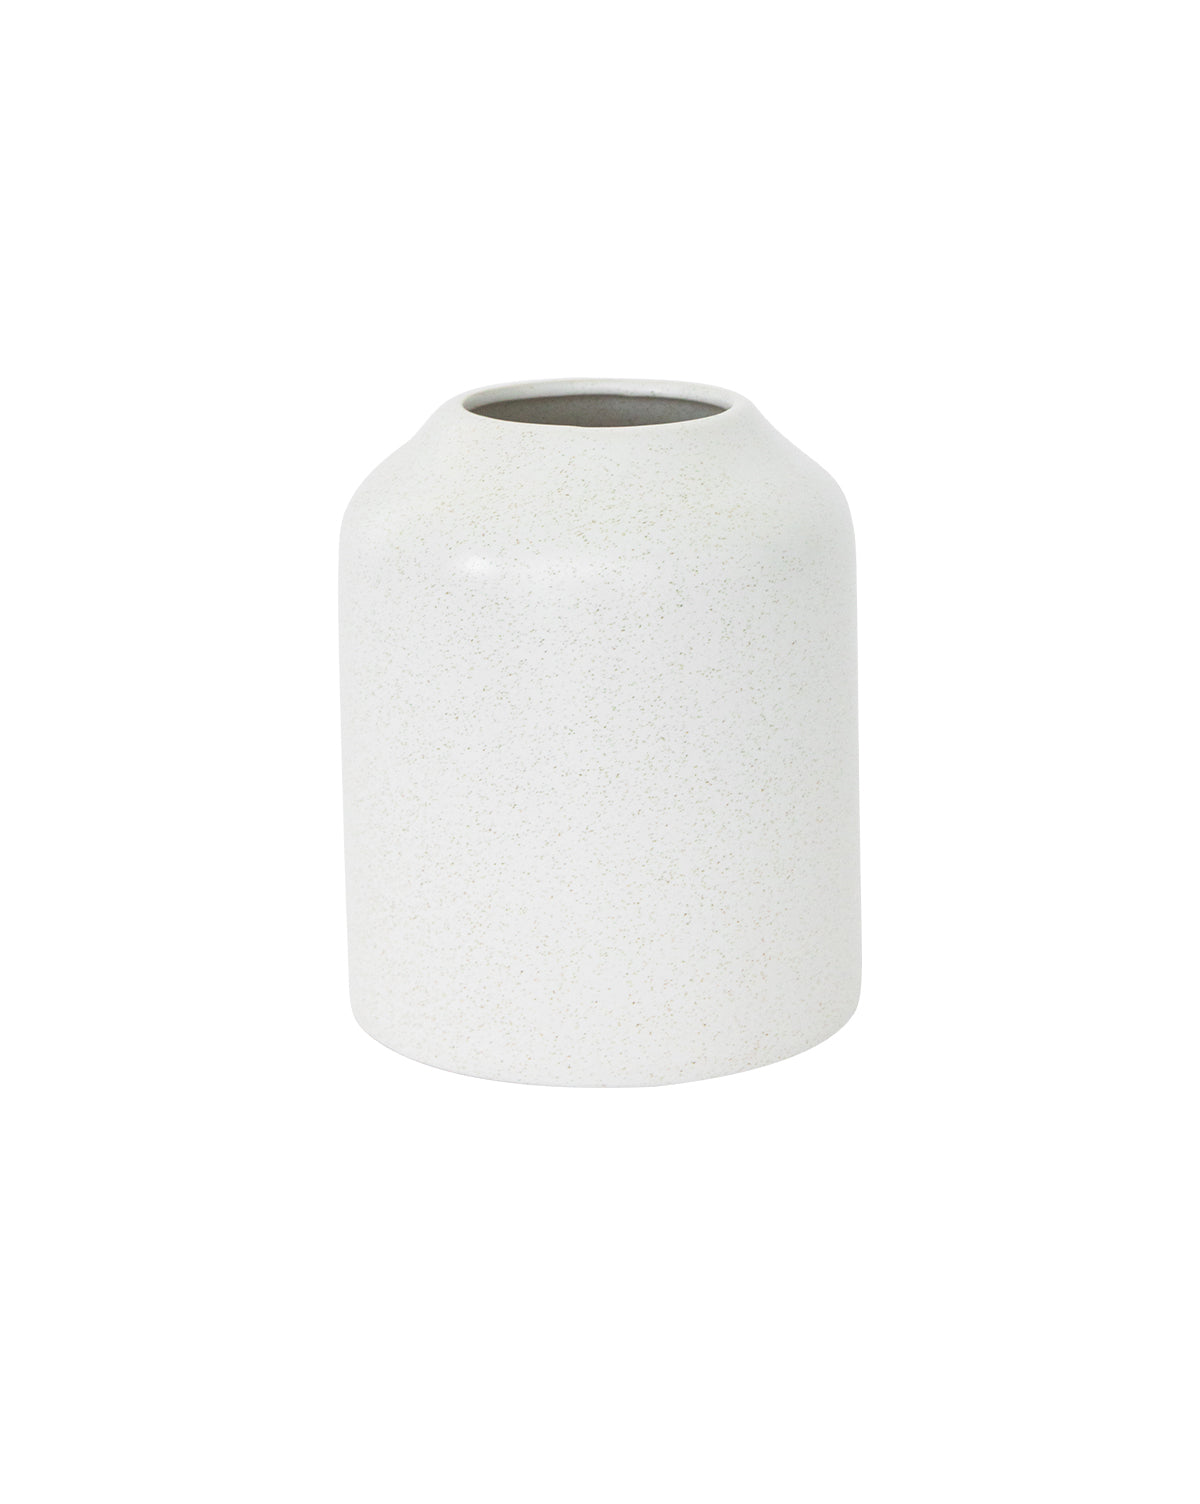 Perri Speckled Vase